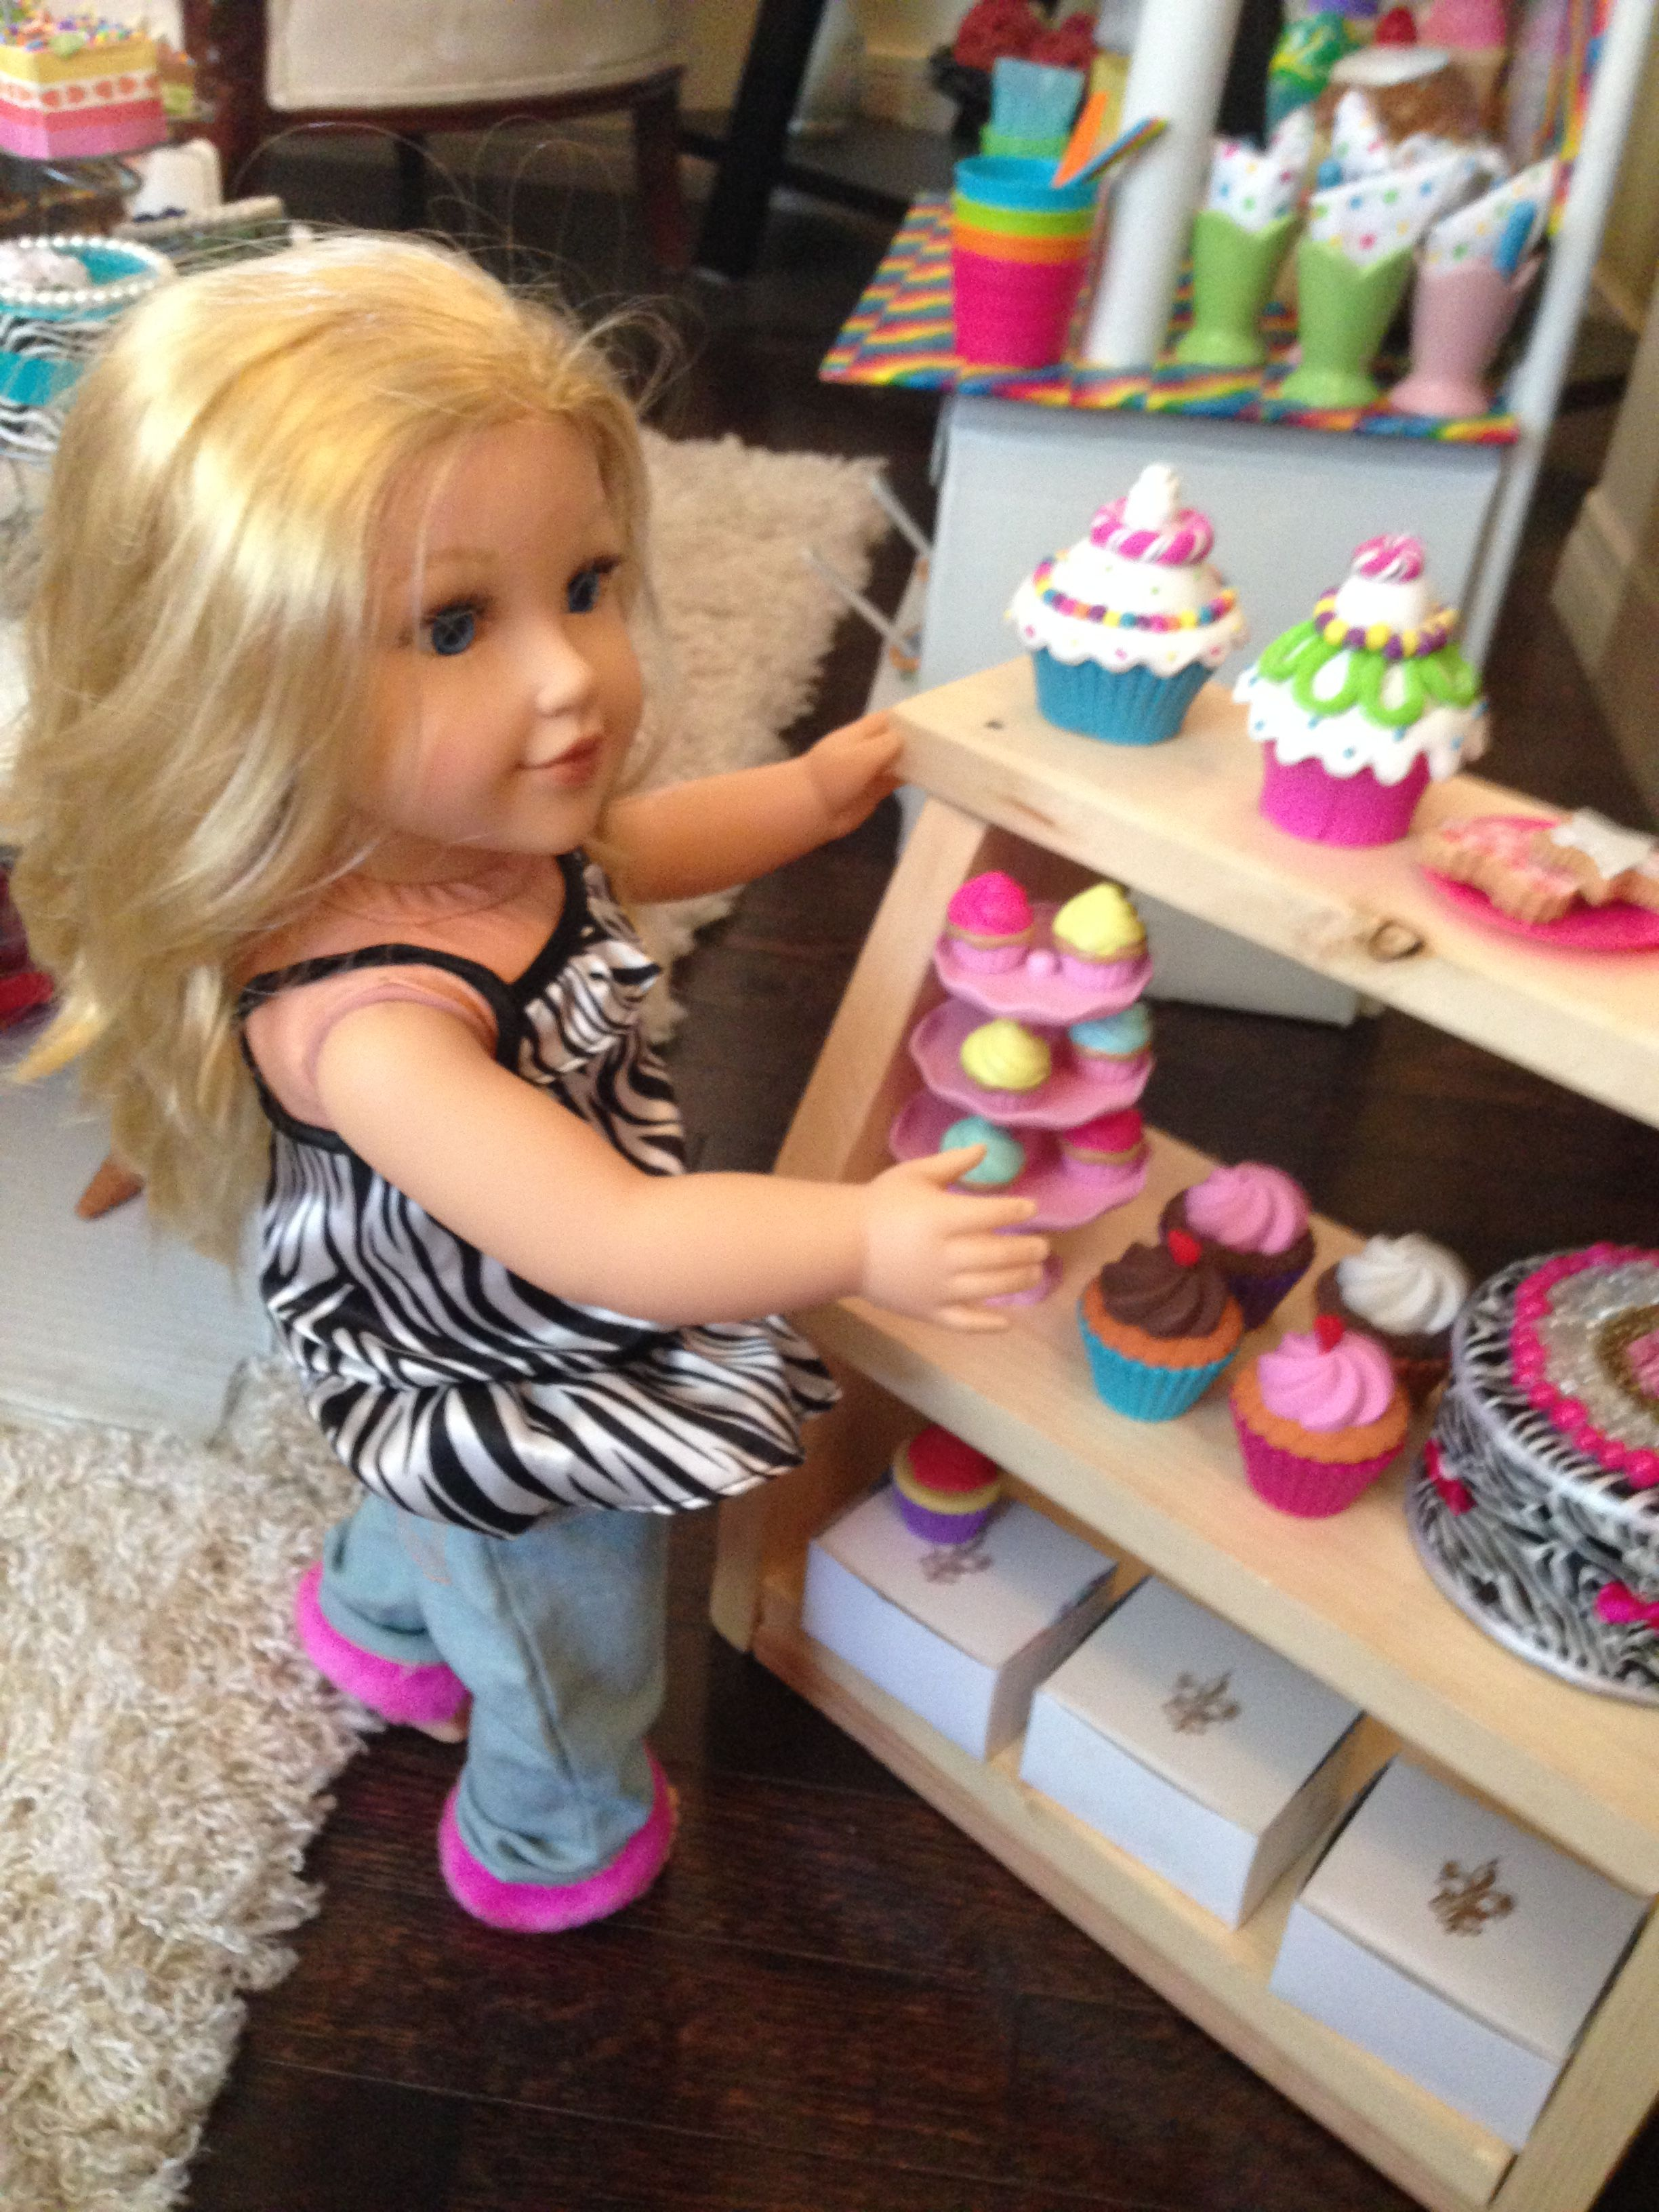 A bakery fit for a doll american girl crafts american